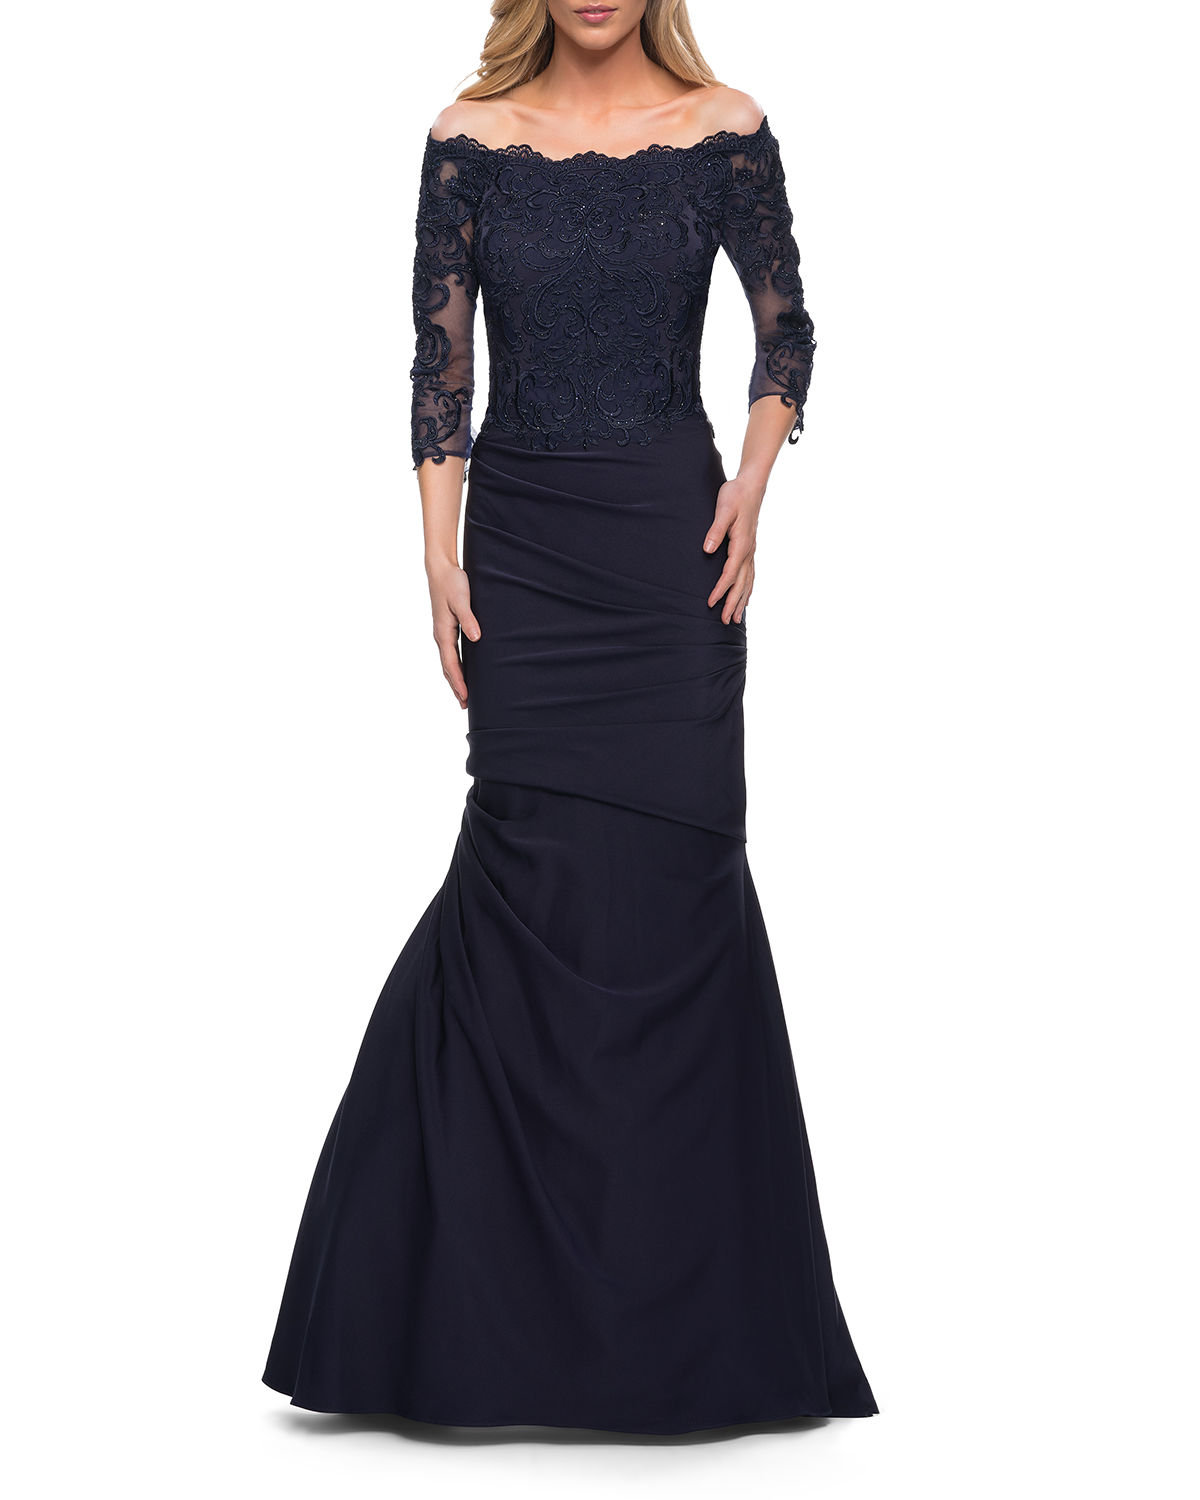 La Femme Gowns GATHERED LACE MERMAID GOWN WITH JERSEY SKIRT